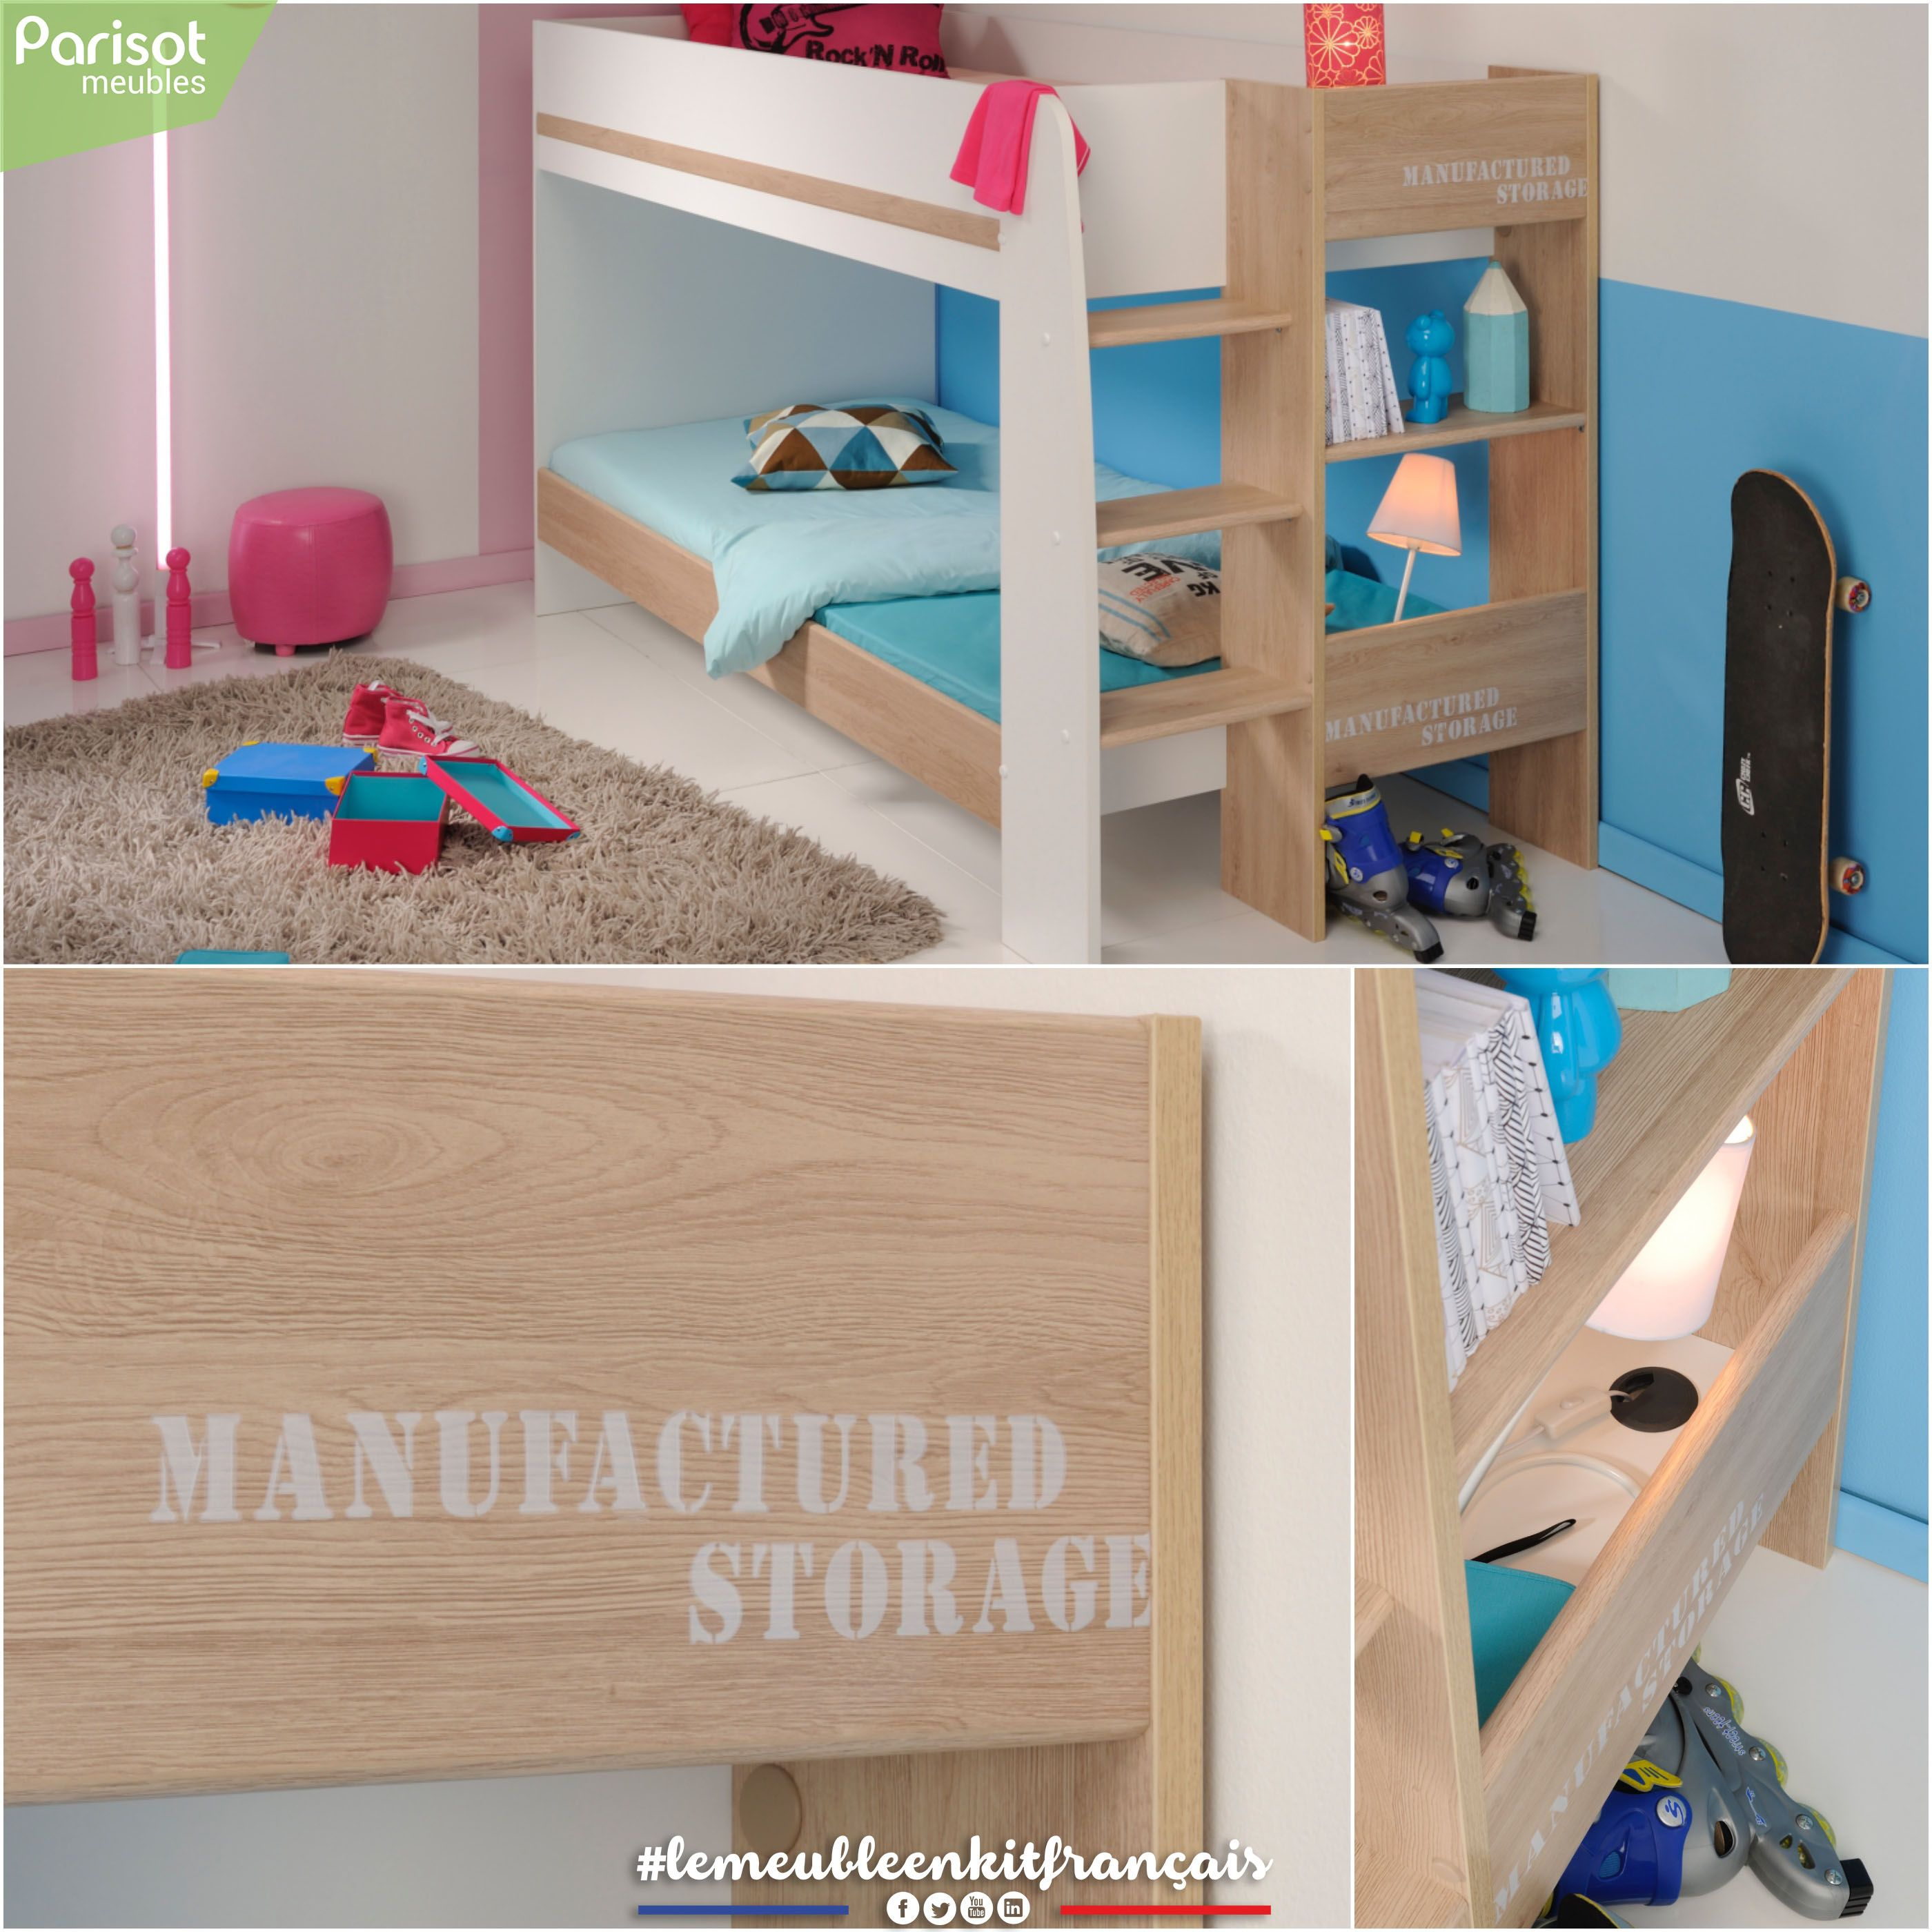 Family By Parisot Meubles A Compact And Functional Bunk Bed Bringing 3 Individual Sleeping Spaces In 4m Lemeubleenkitfrancais Mobilier De Salon Interieur